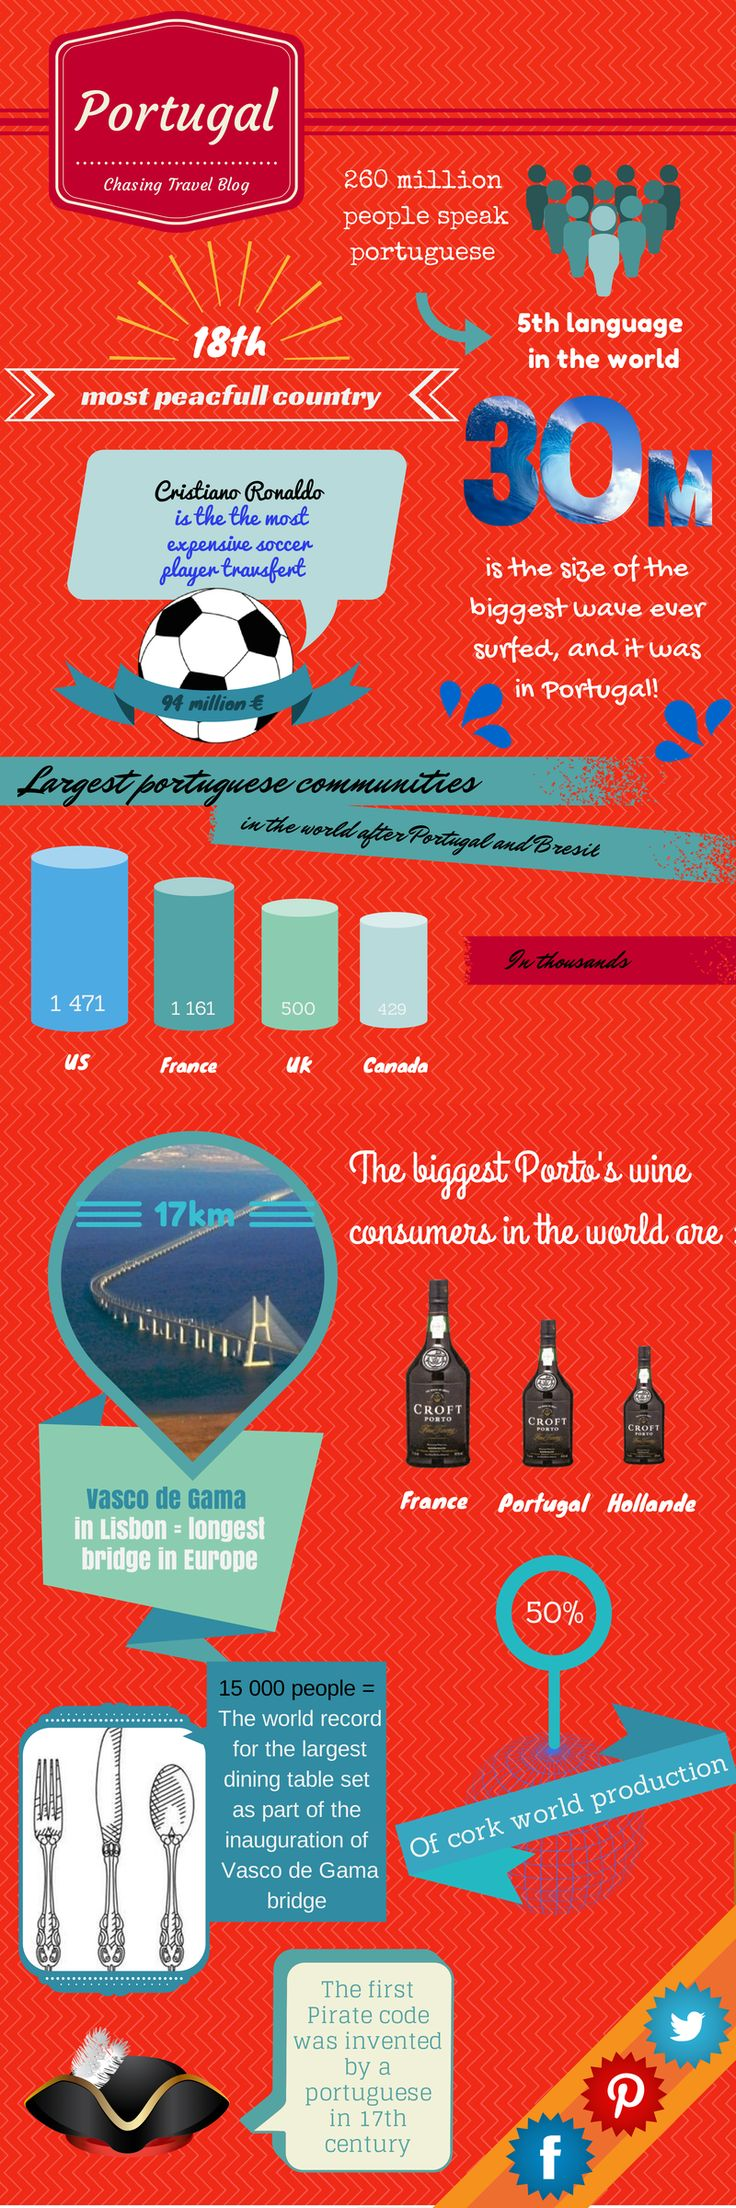 interesting facts about portugal #Infographie #Portugal #ChasingTravel